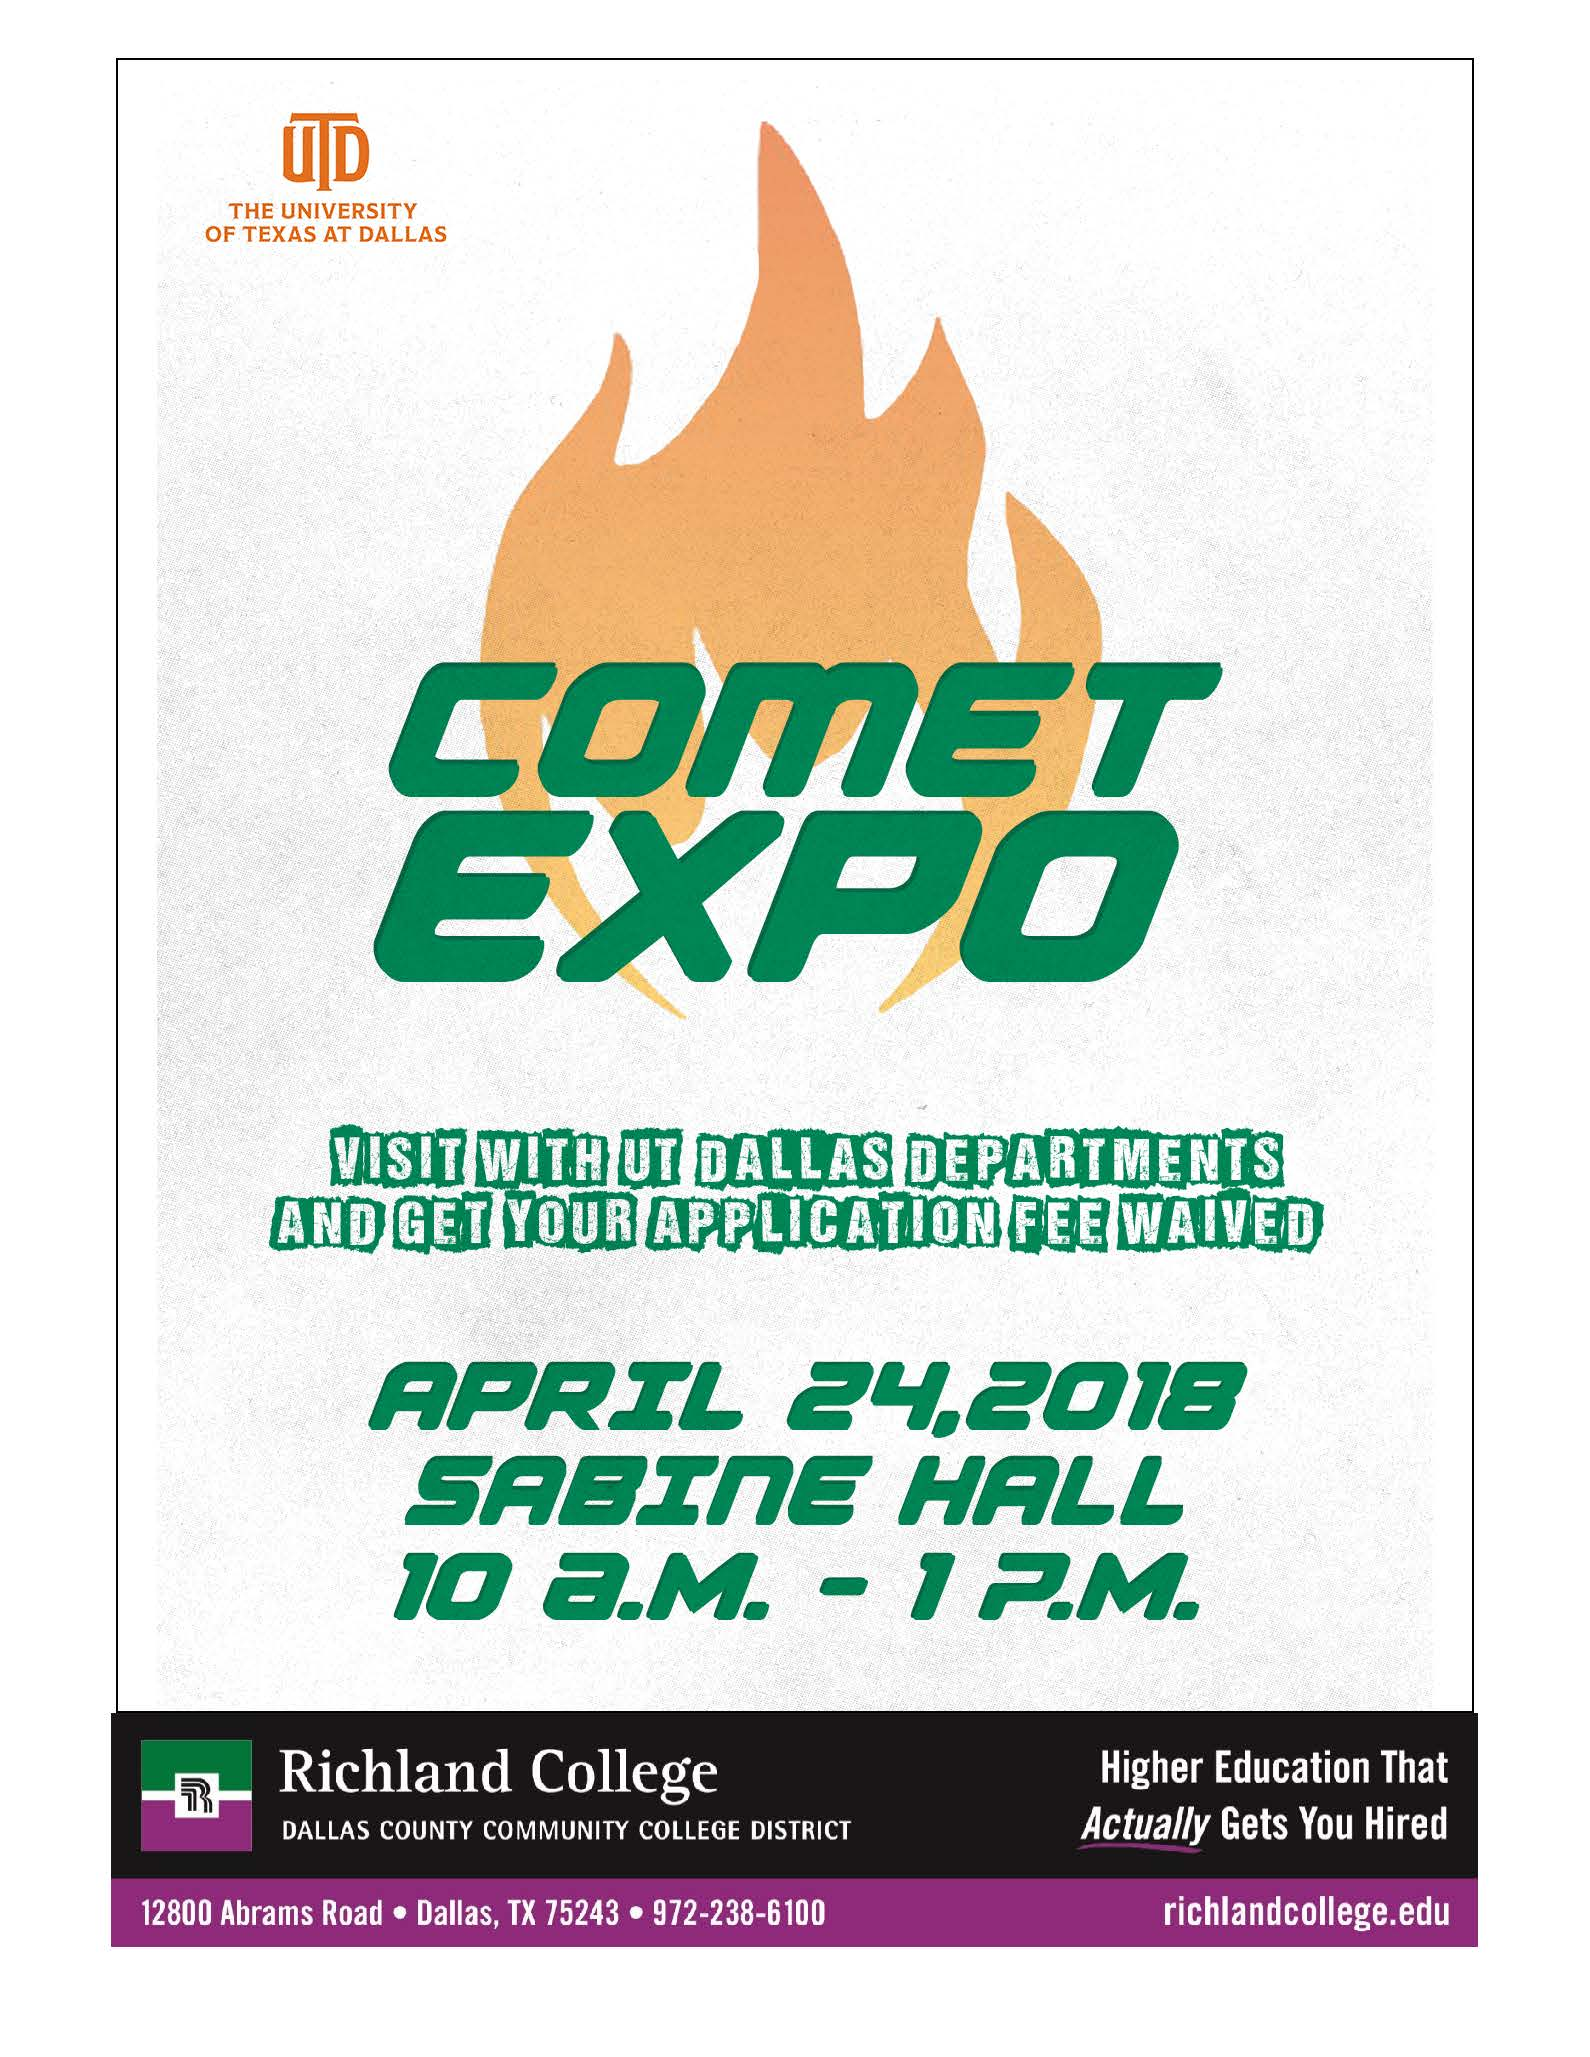 Richland College - UTD Comet Expo - Free Application Day on palmetto richland hospital map, richland college catalog, richland community college map, richland college history, richland city map, richland college dallas tx, richland decatur illinois, richland memorial hospital map, richland college field map,